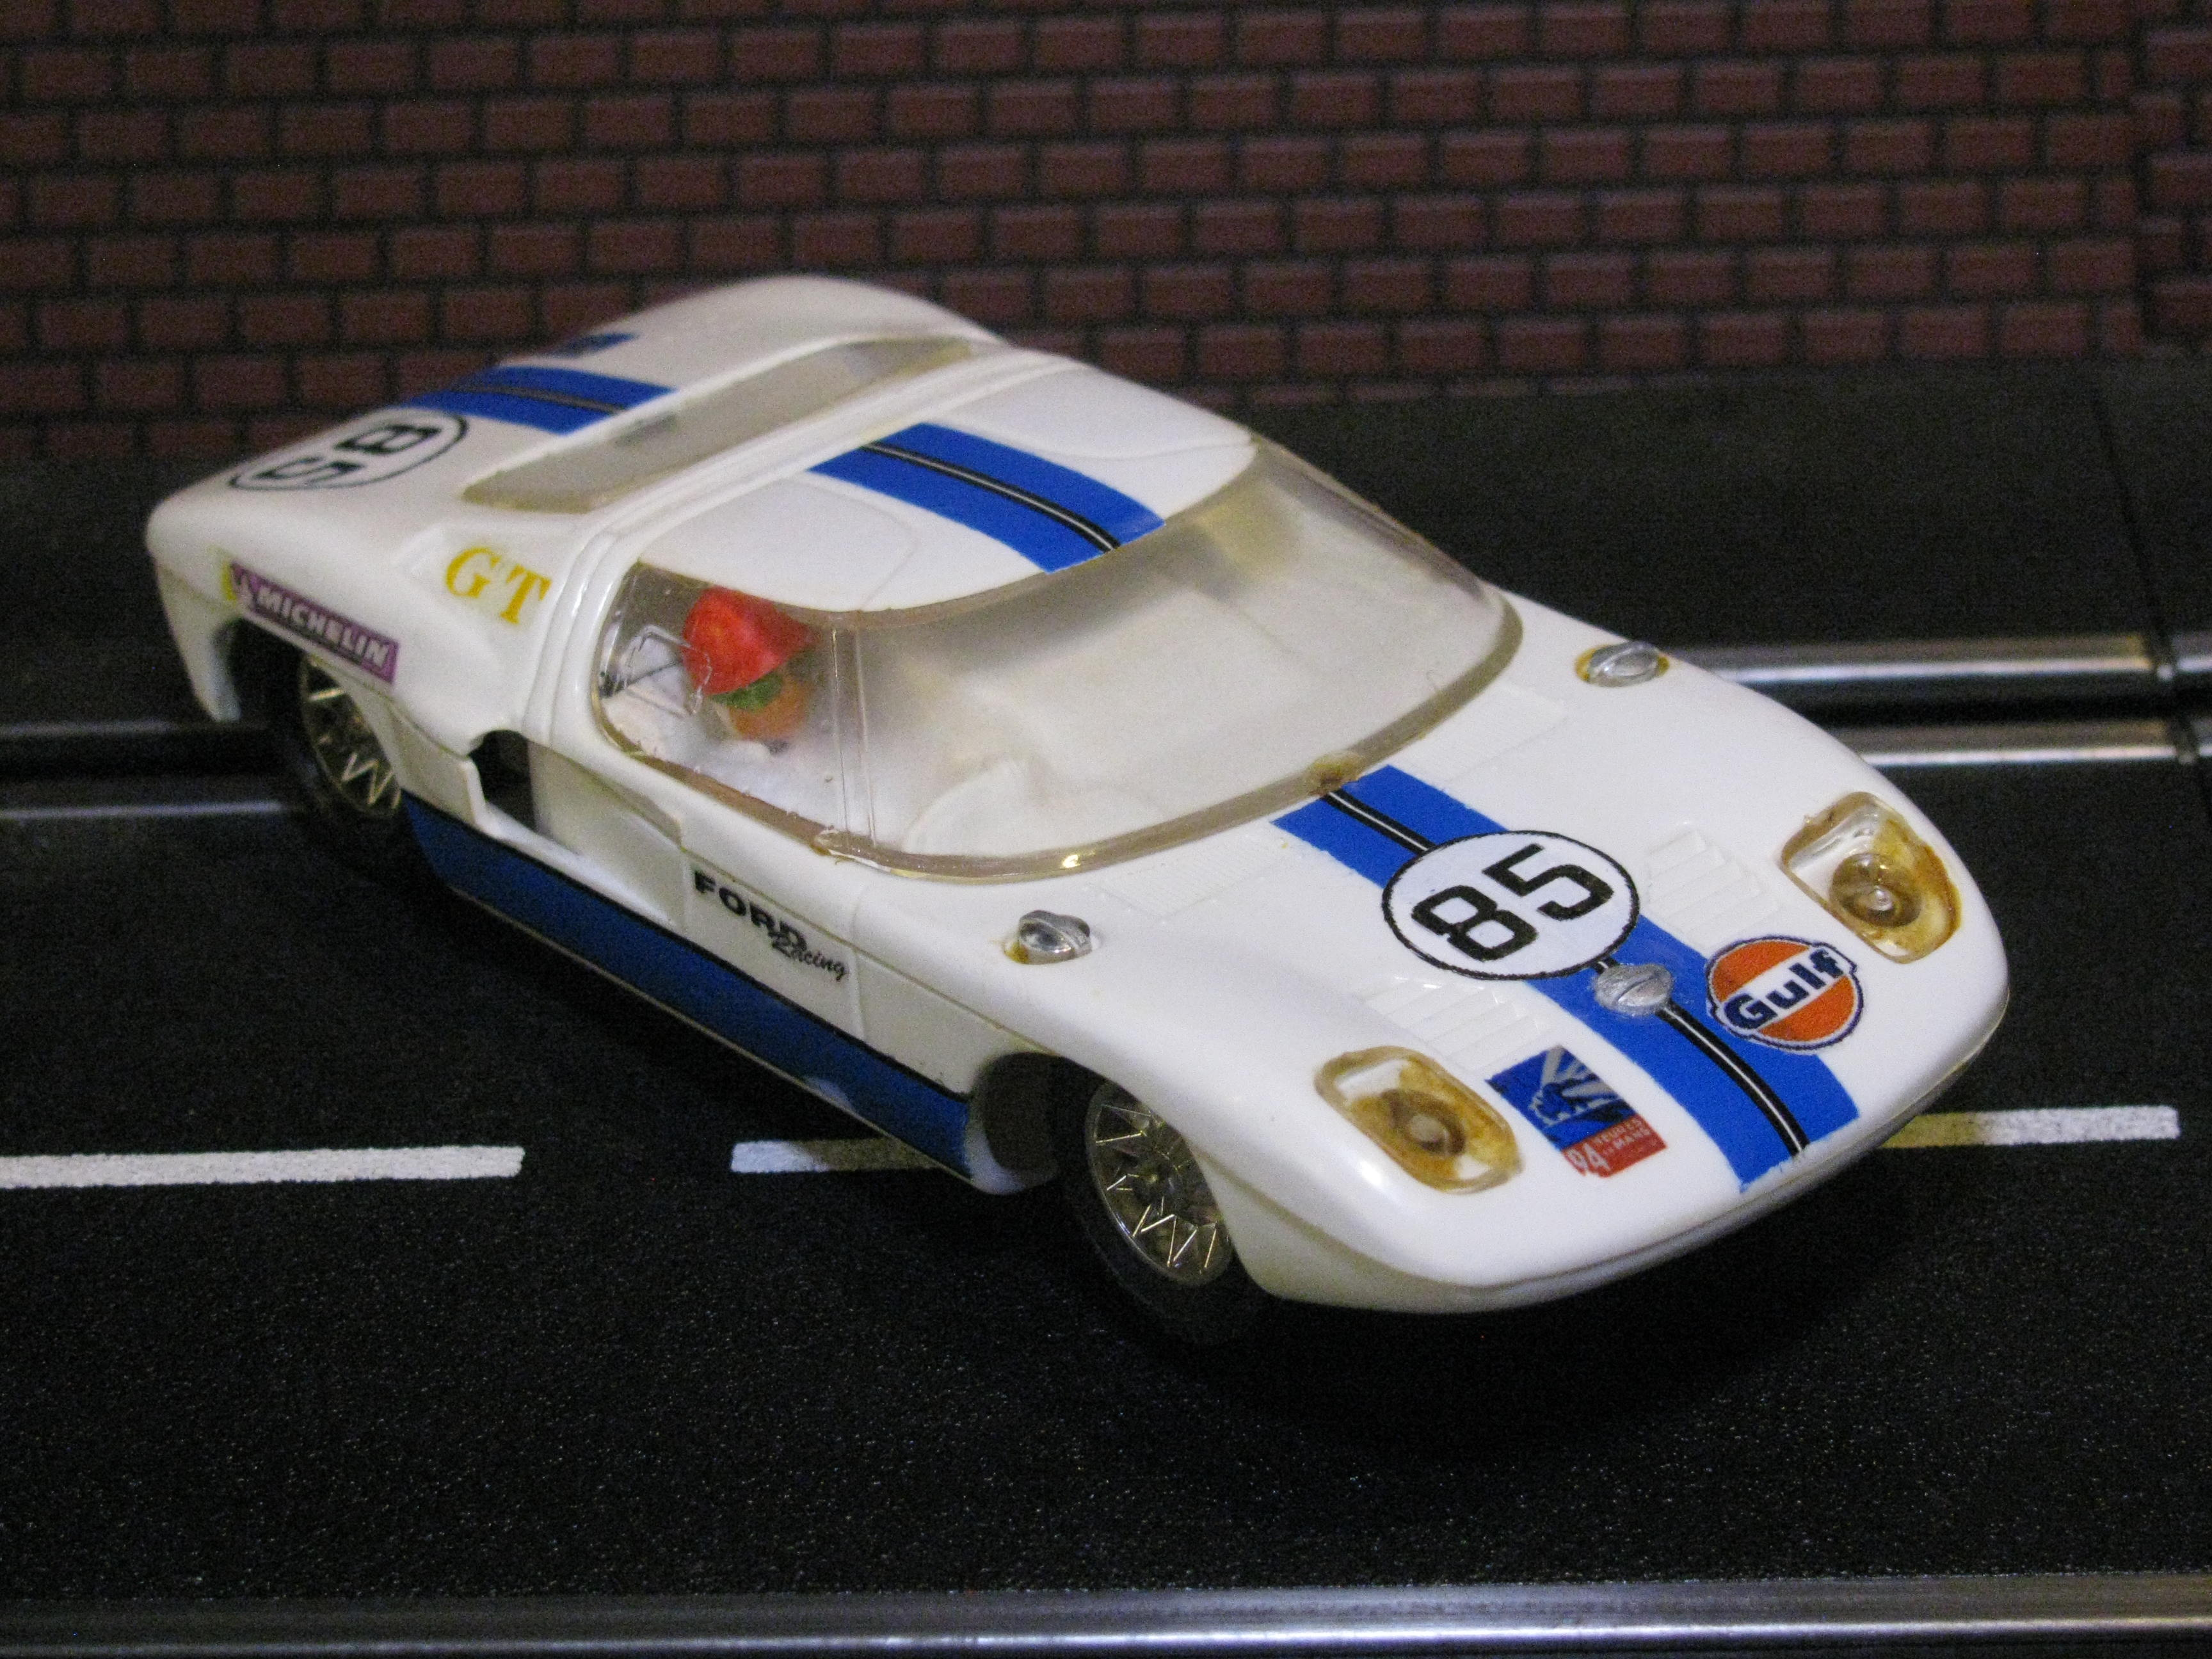 * SOLD * Strombecker FORD GT - White - Car 85 - 1/32 Scale